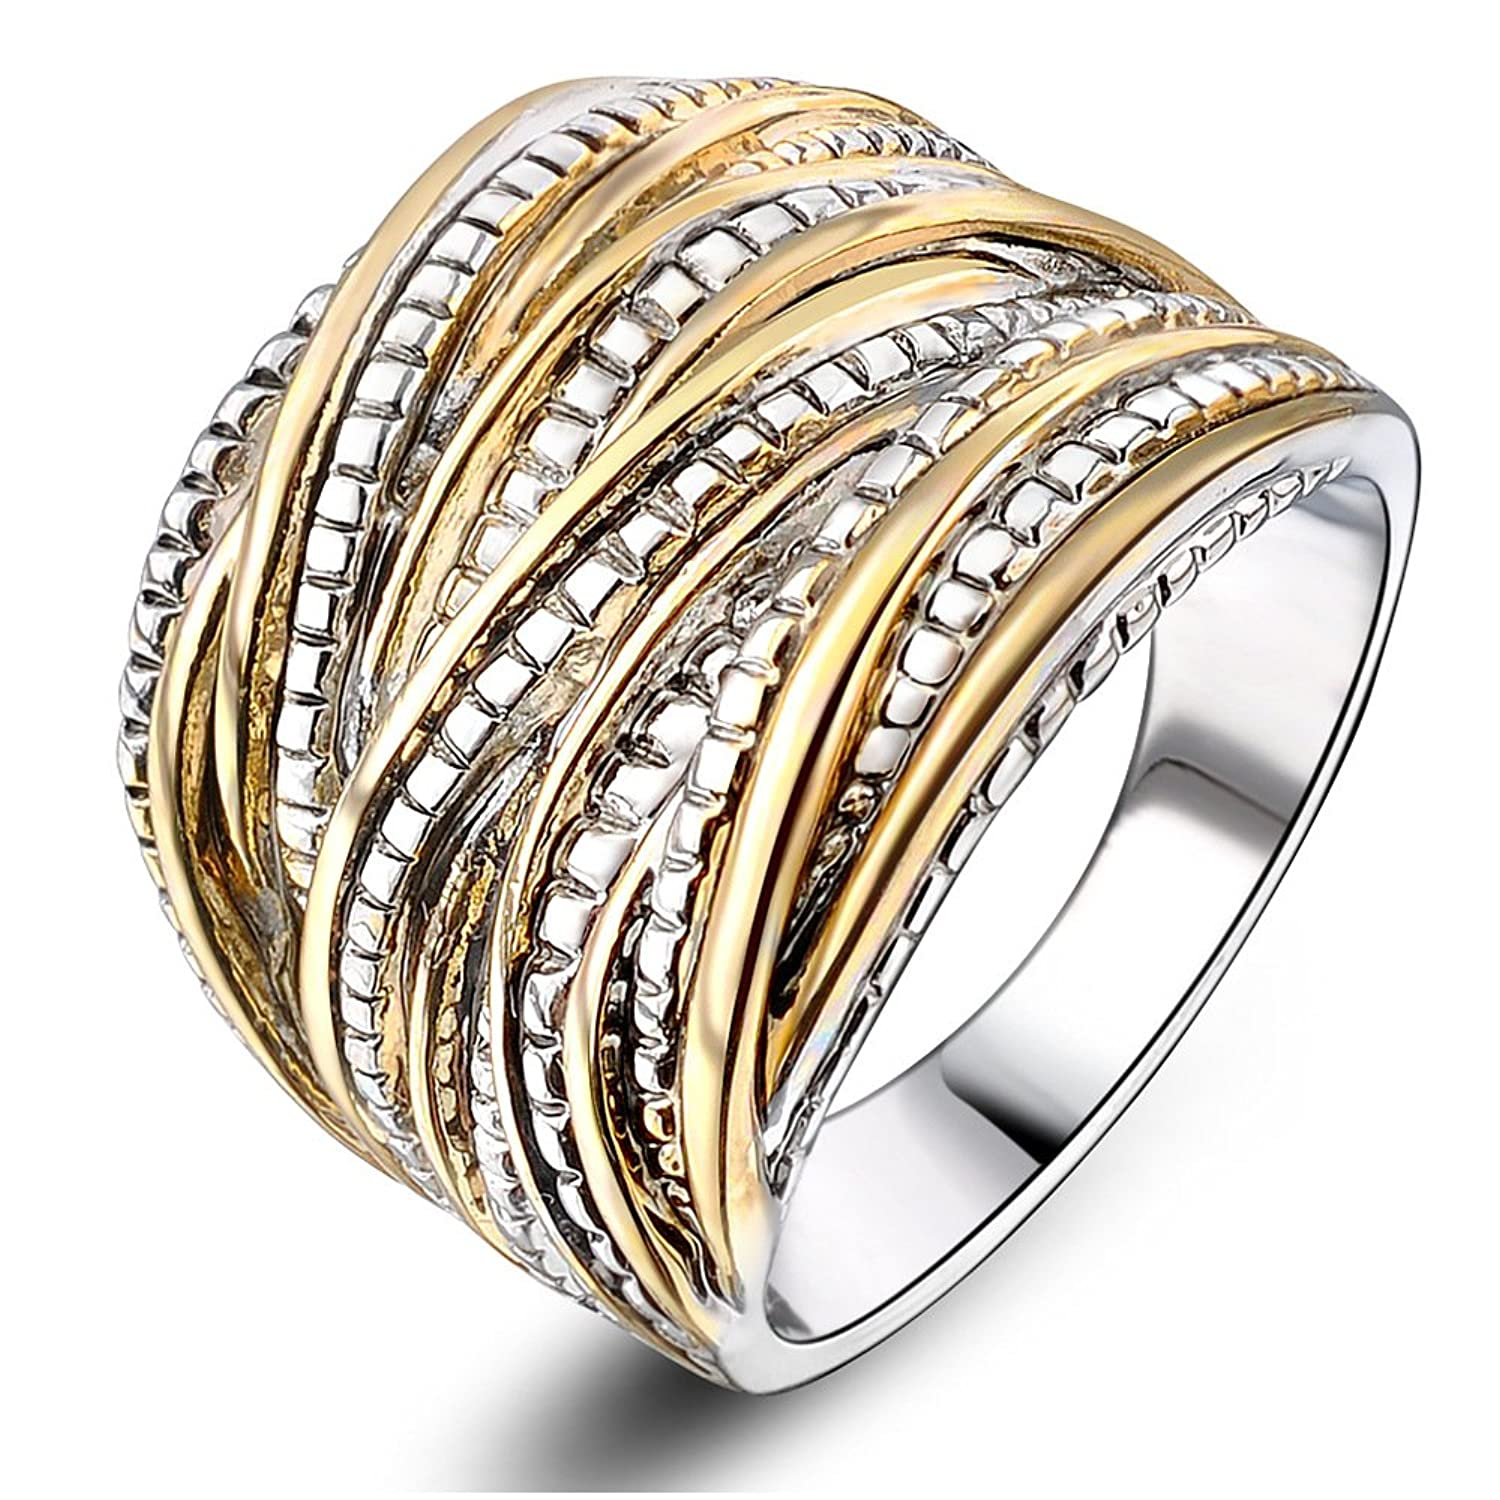 Mytys 18k Gold Plated Vintage Interterwined Design Fashion Rings